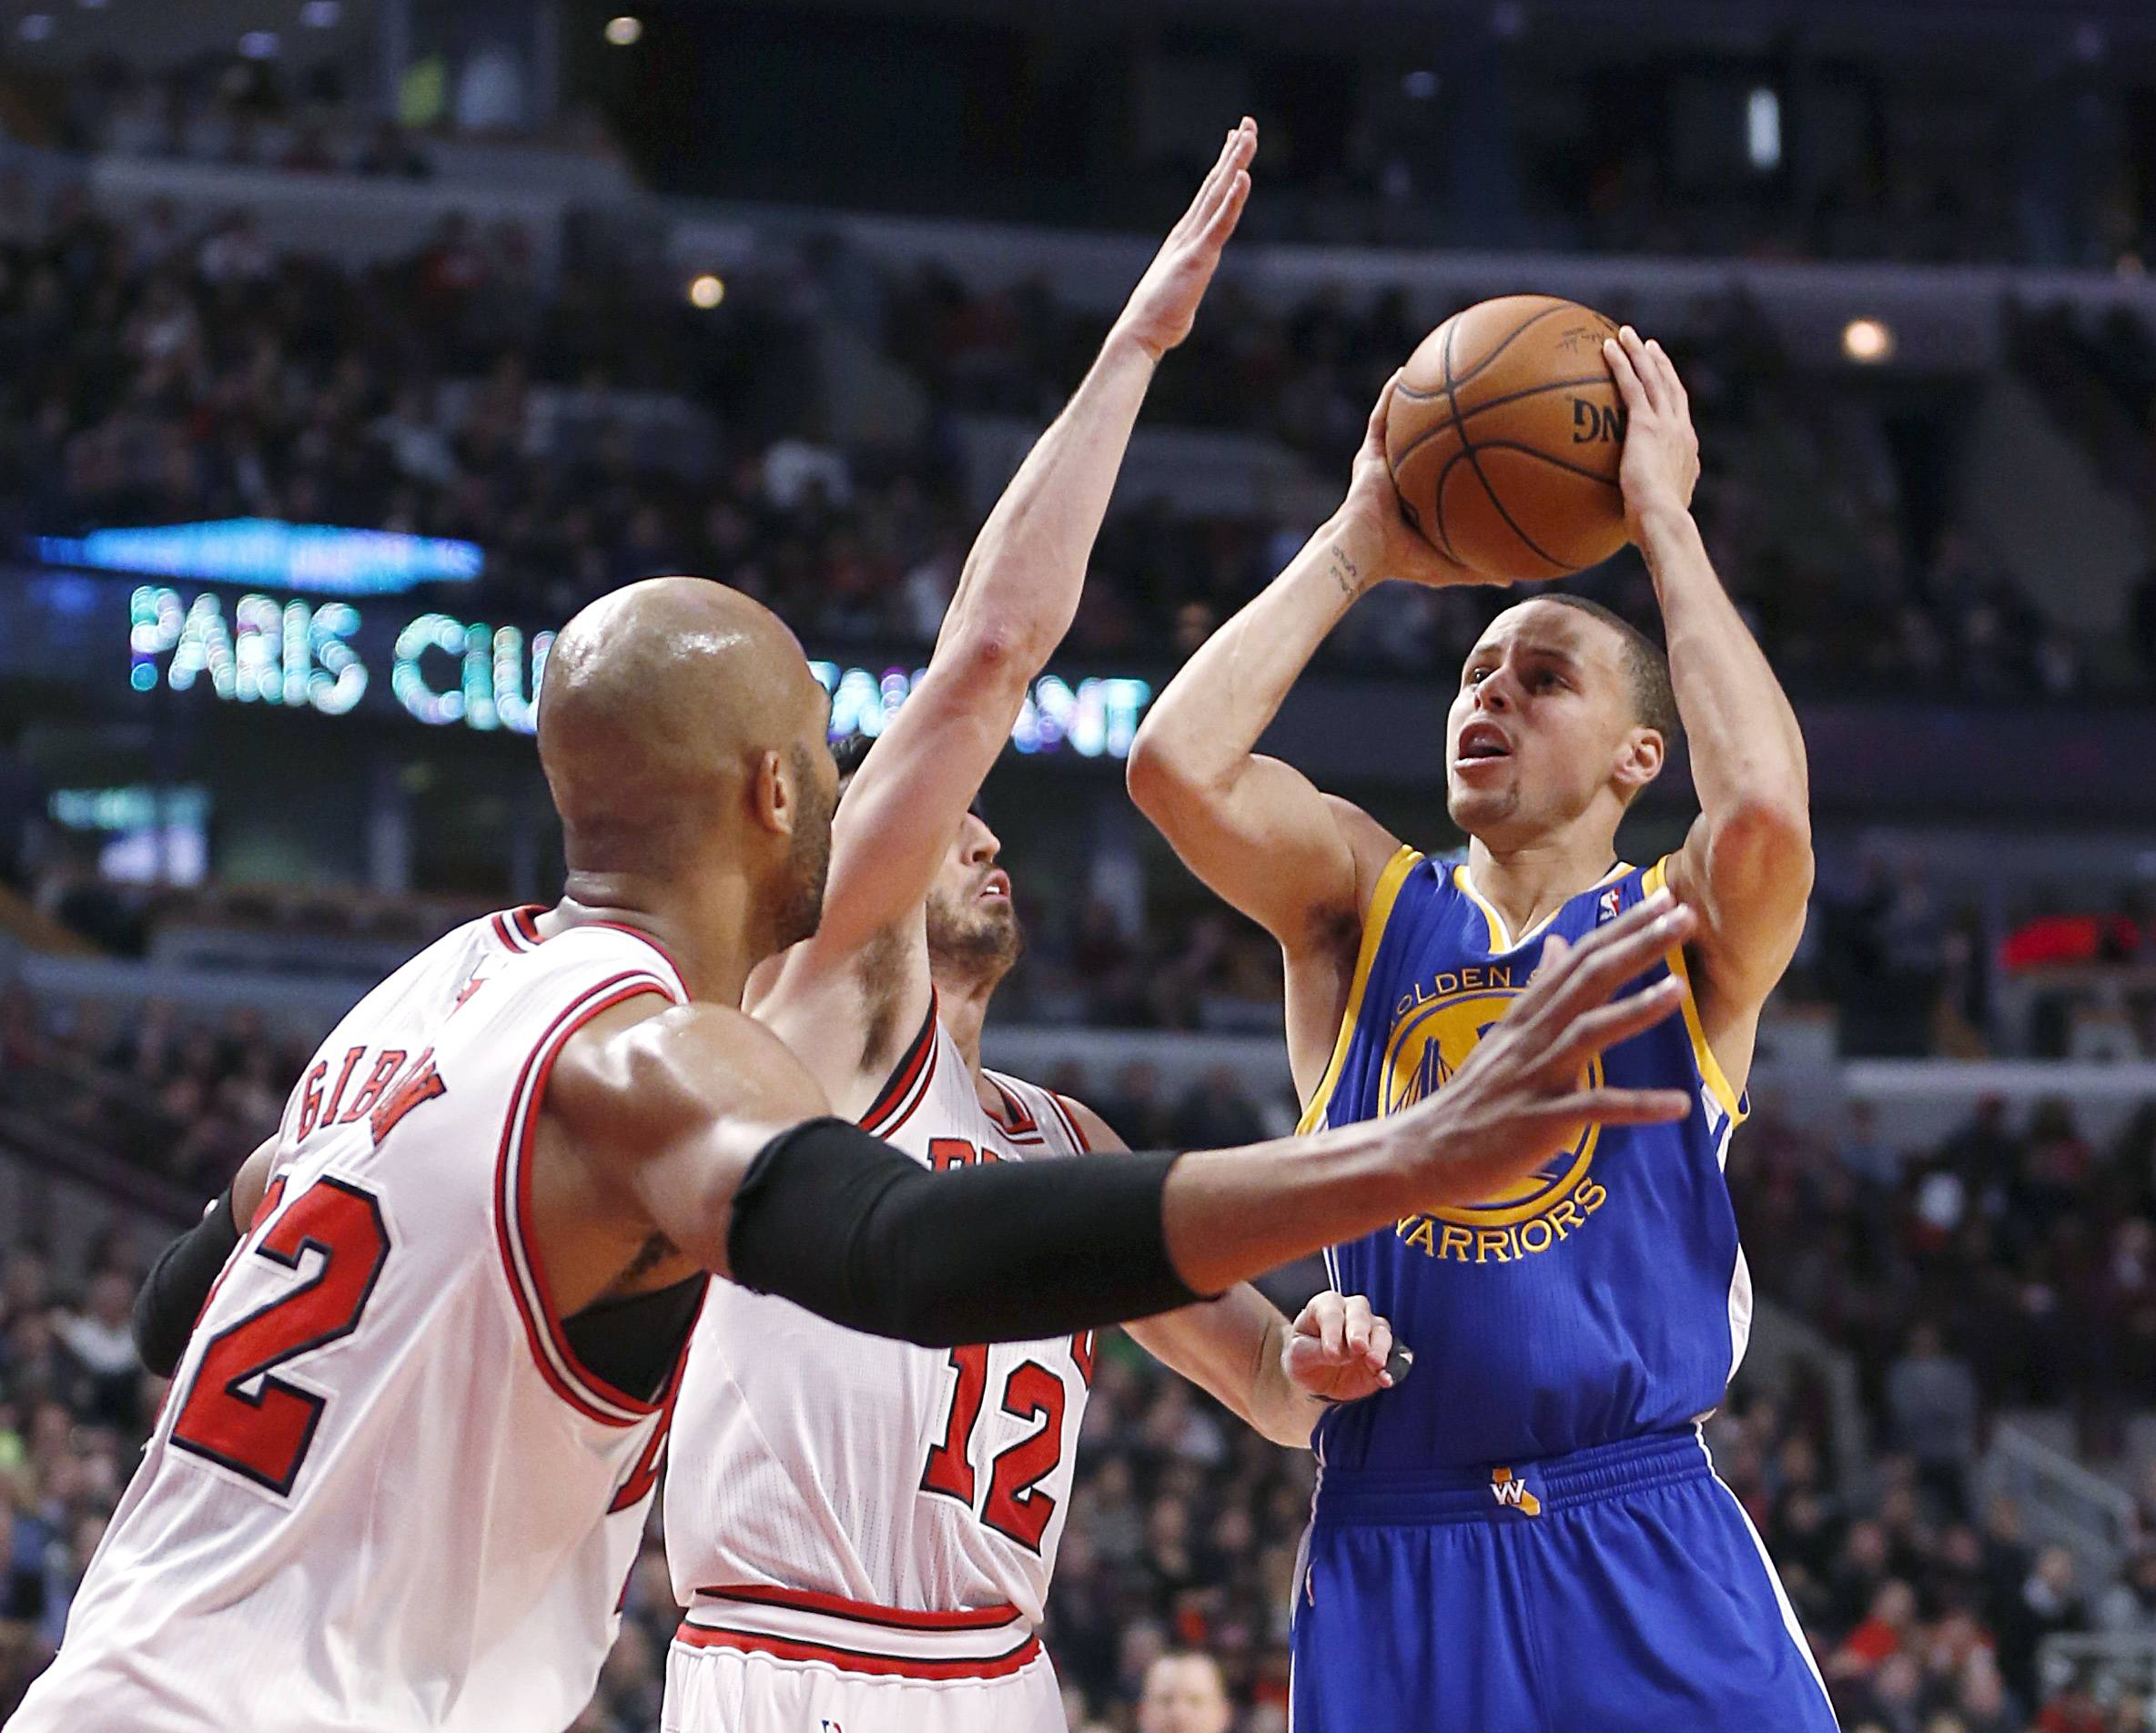 The Bulls' Taj Gibson and Kirk Hinrich make things difficult for Warriors all-star guard Stephen Curry, who finished with 5 points Wednesday night.